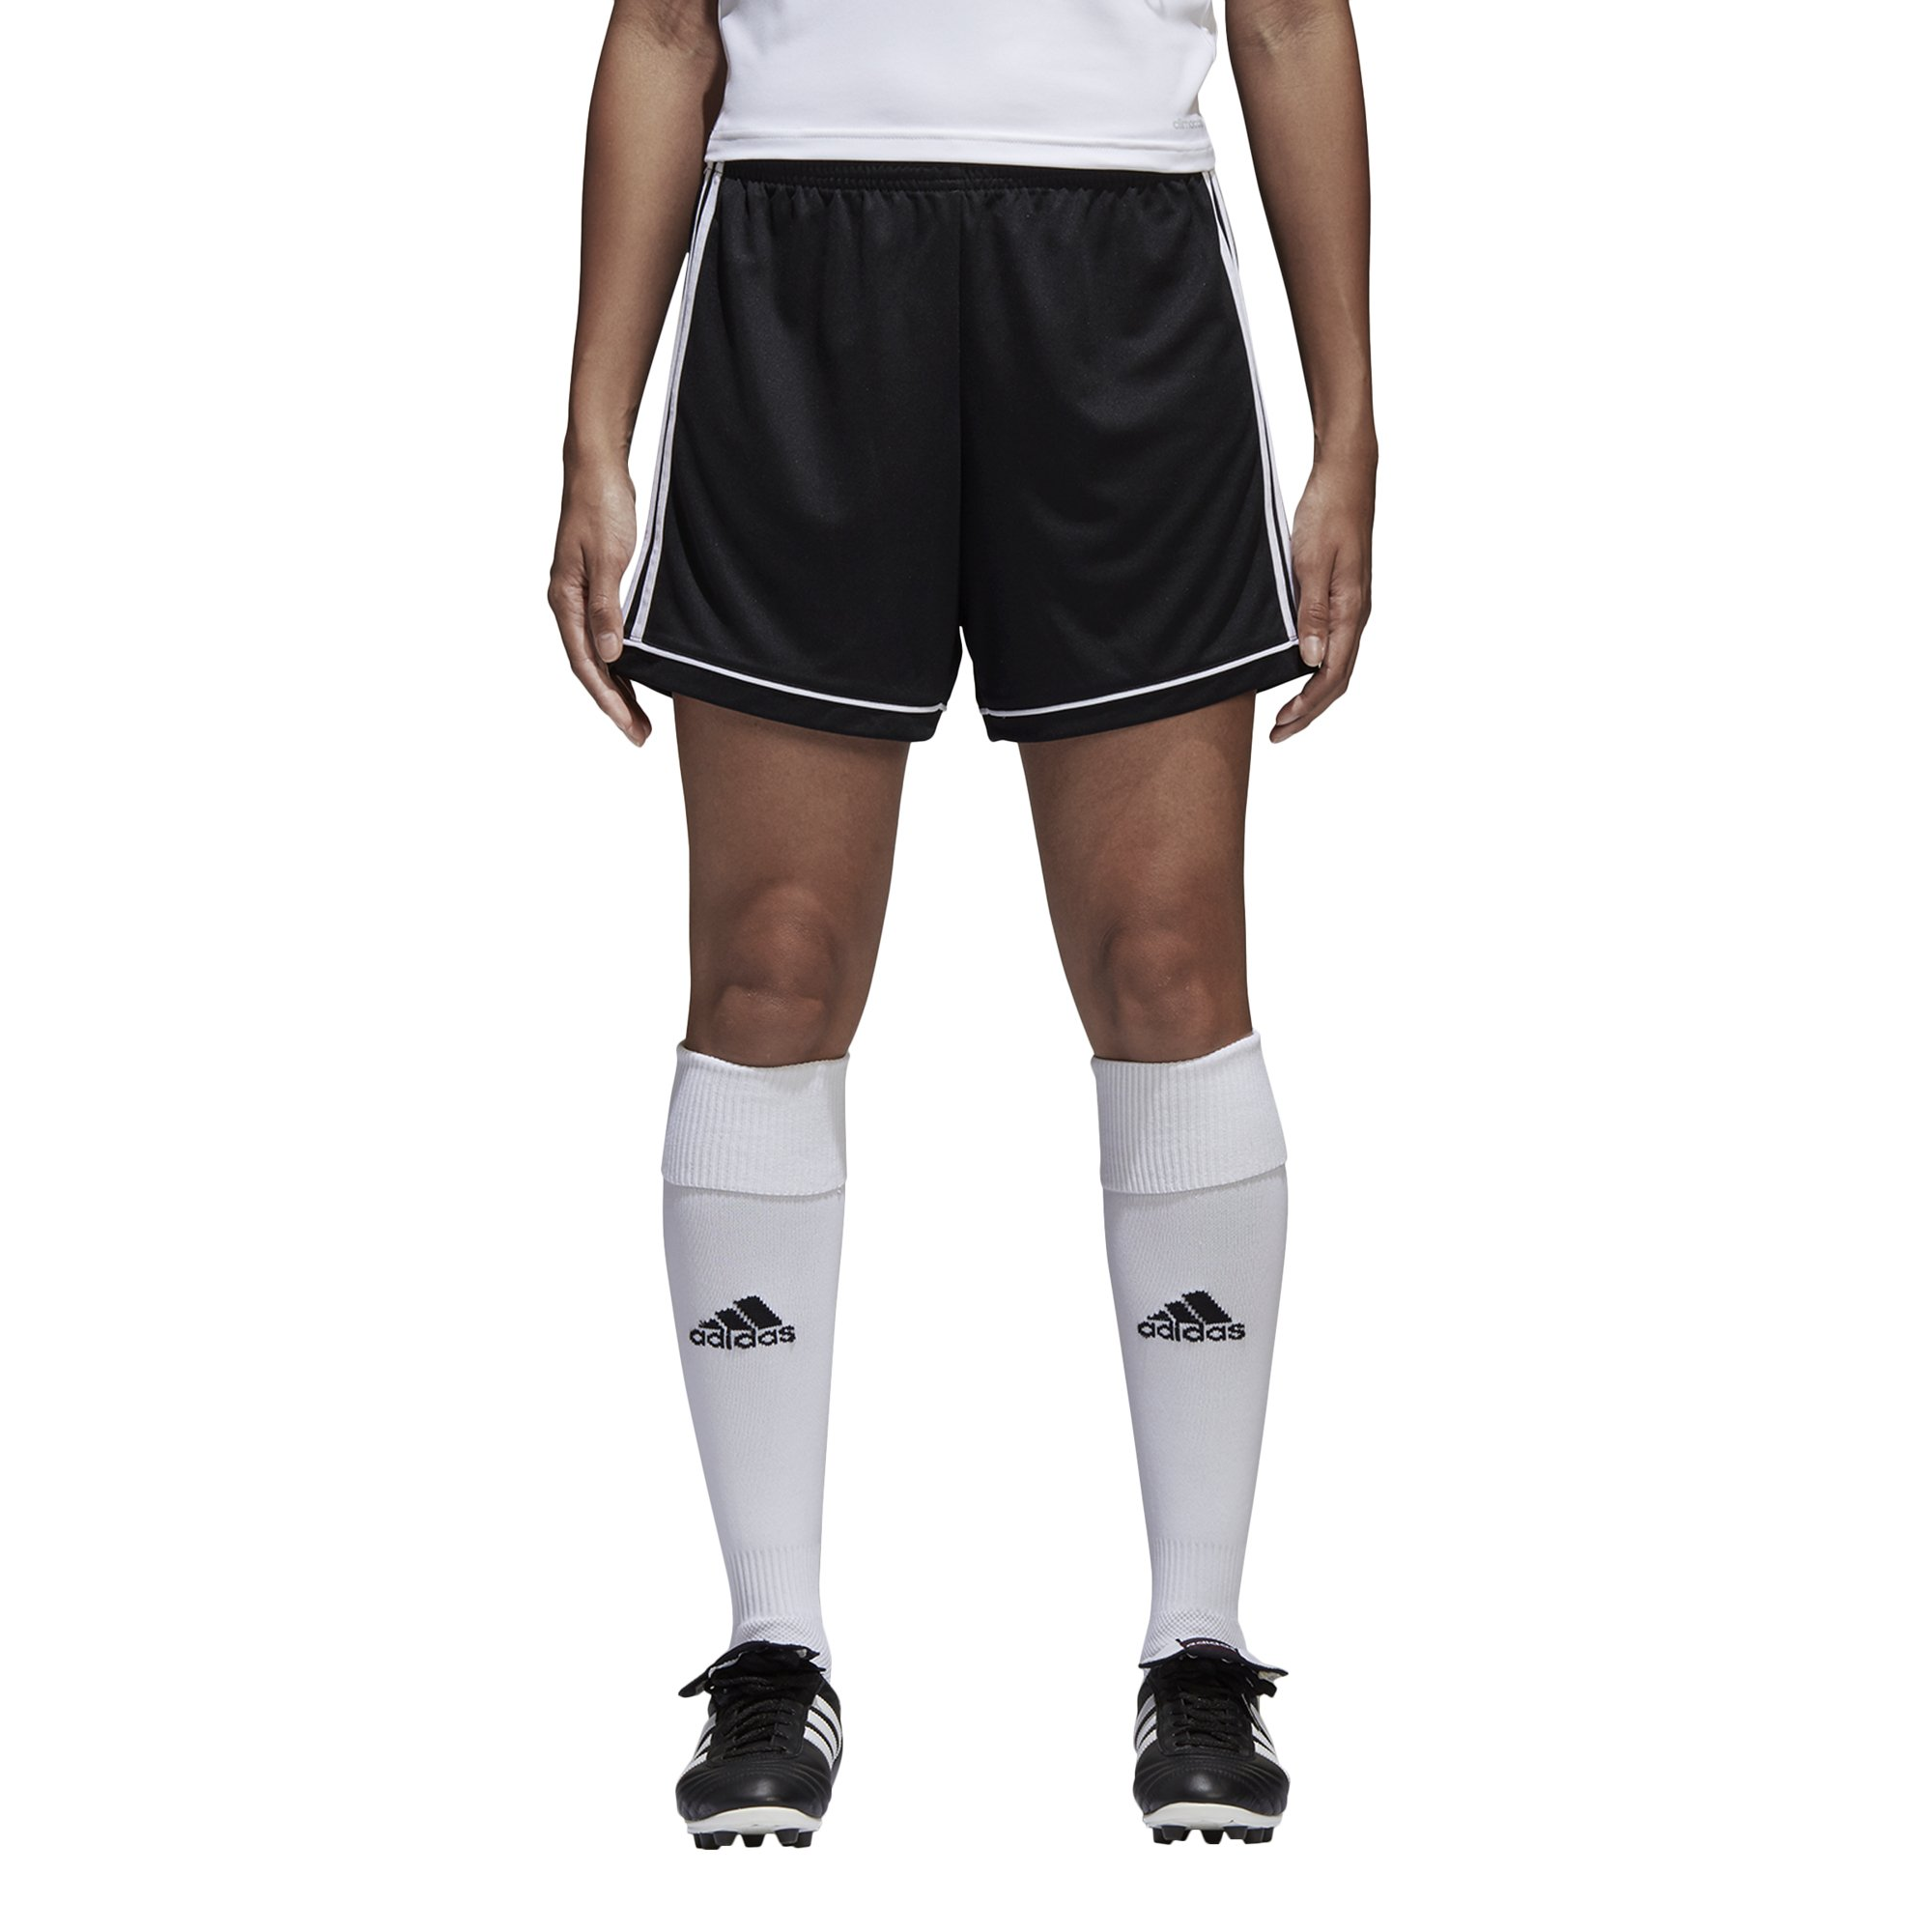 b22b775400 Best Rated in Women's Soccer Shorts & Helpful Customer Reviews ...